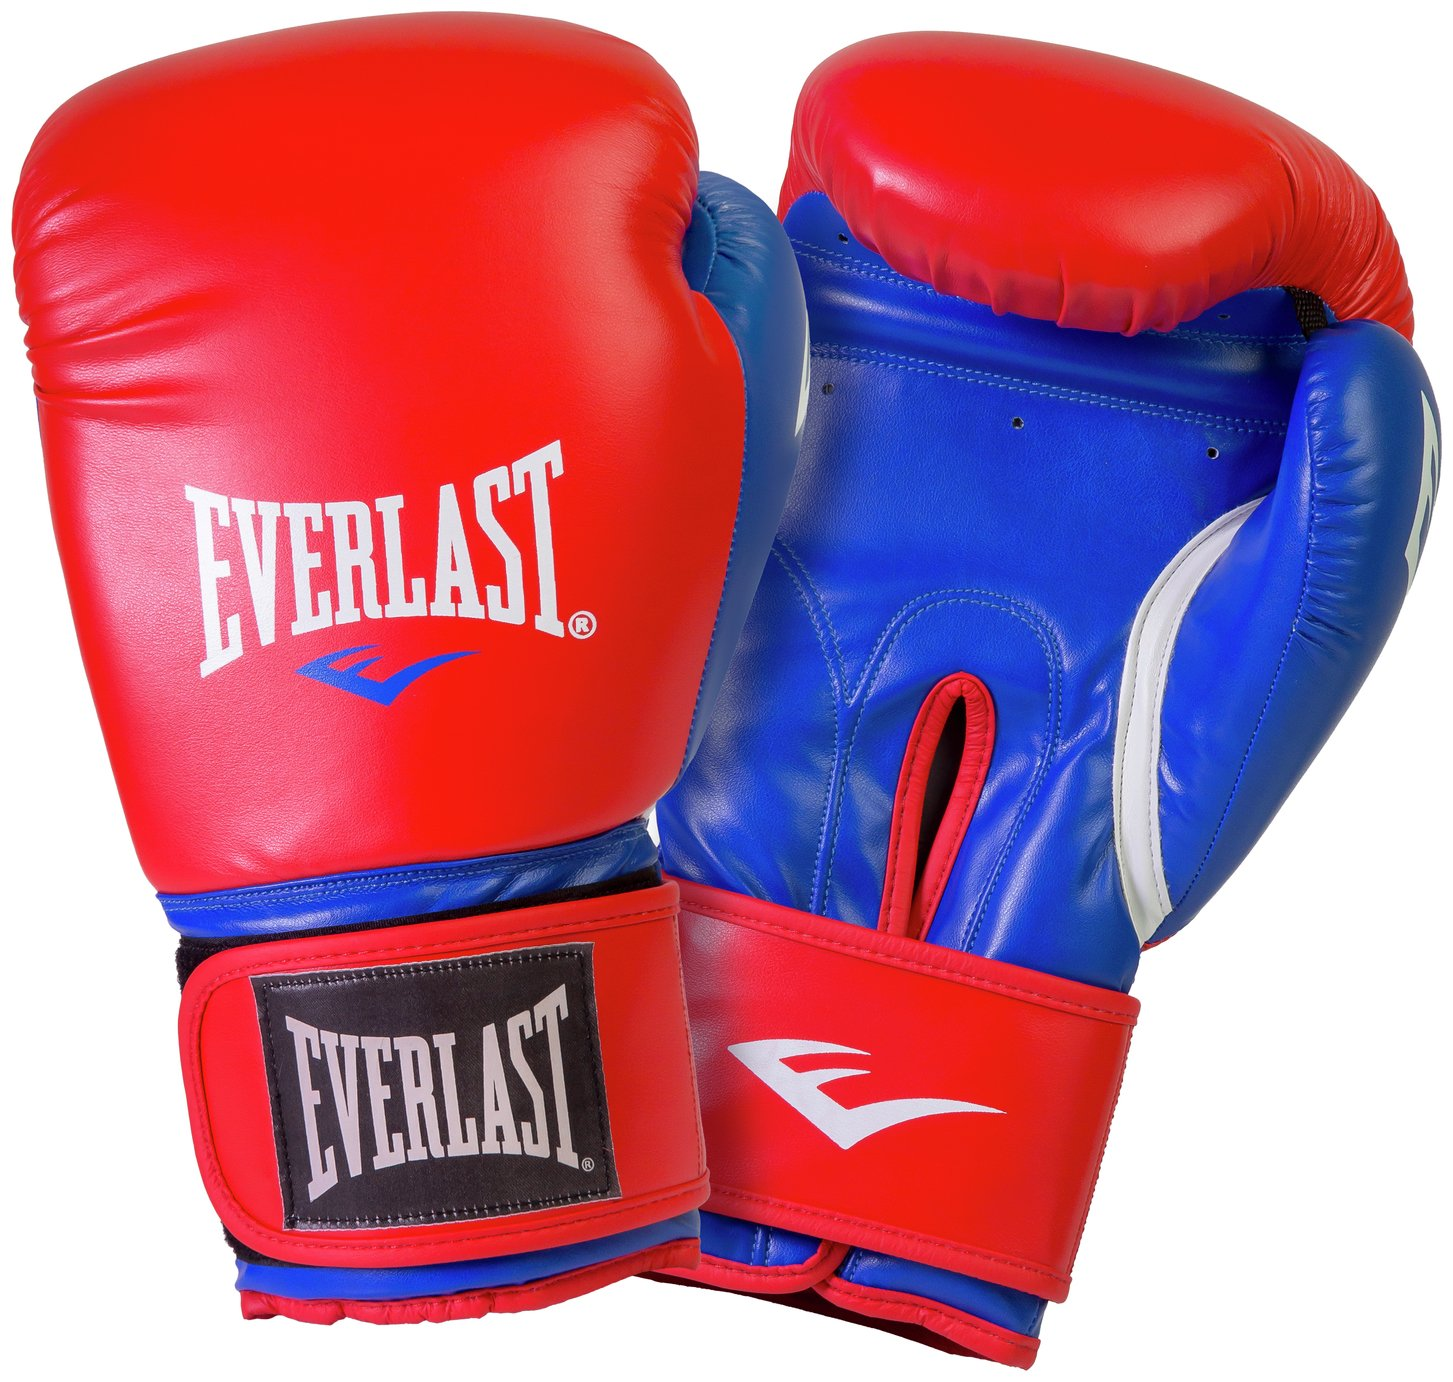 Everlast 14oz Boxing Gloves review